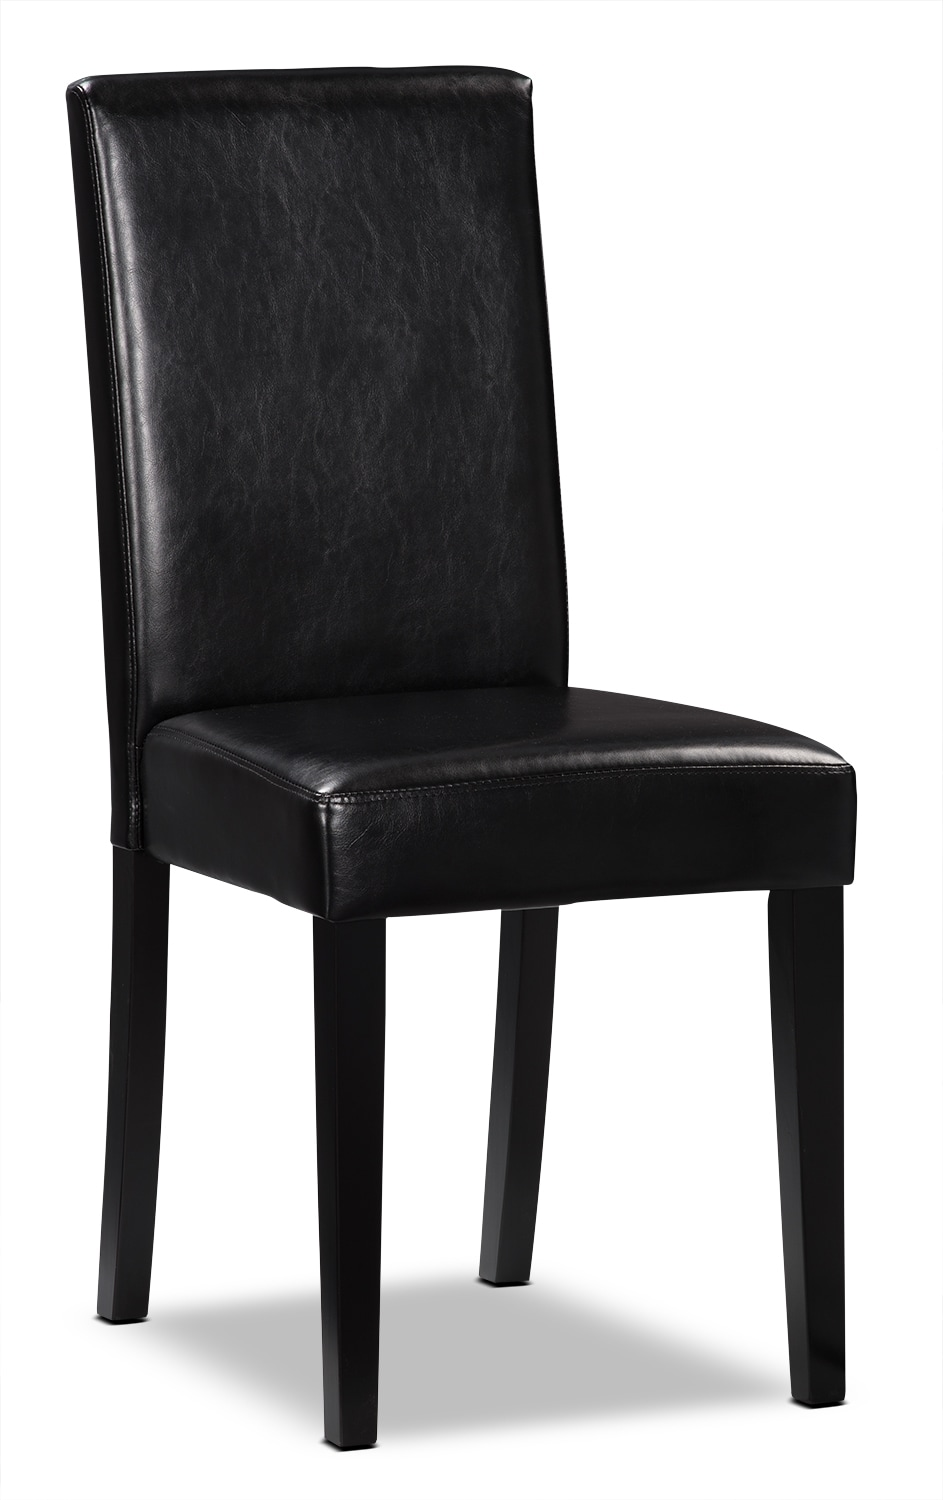 Black Faux Leather Accent Dining Chair The Brick : 399648 from thebrick.com size 943 x 1500 jpeg 330kB